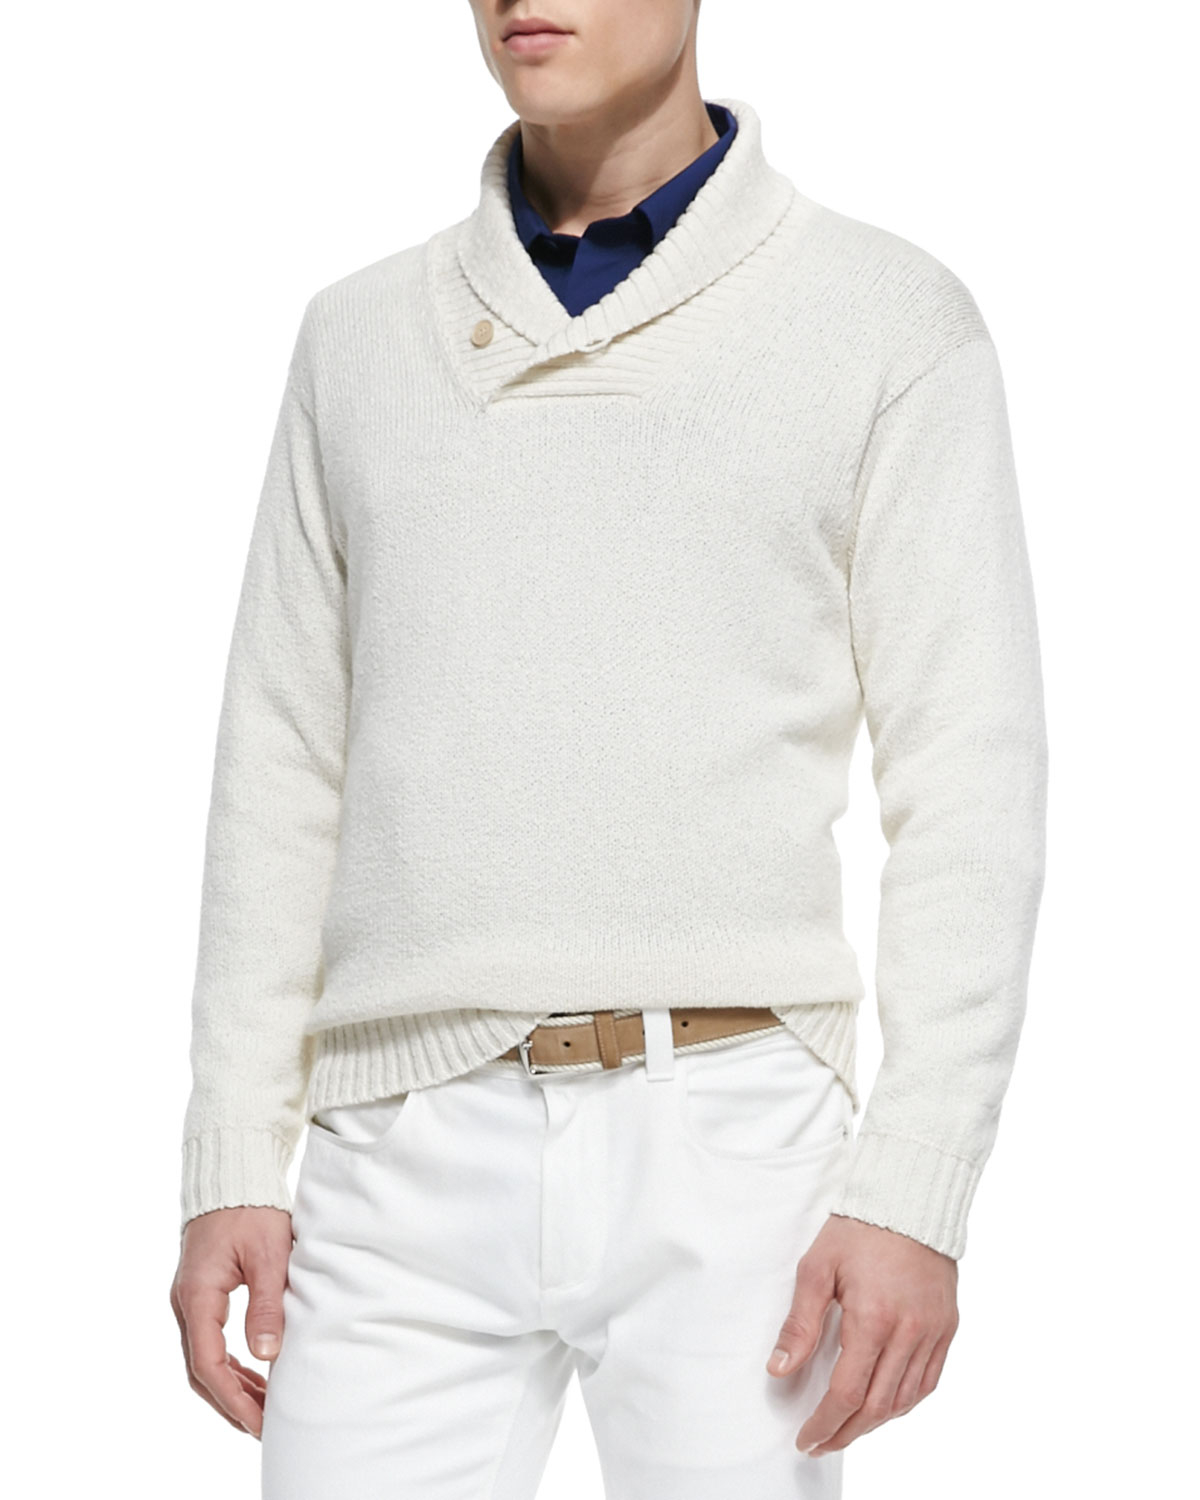 Shop the best selection of men's sweaters at dnxvvyut.ml, where you'll find premium outdoor gear and clothing and experts to guide you through selection.